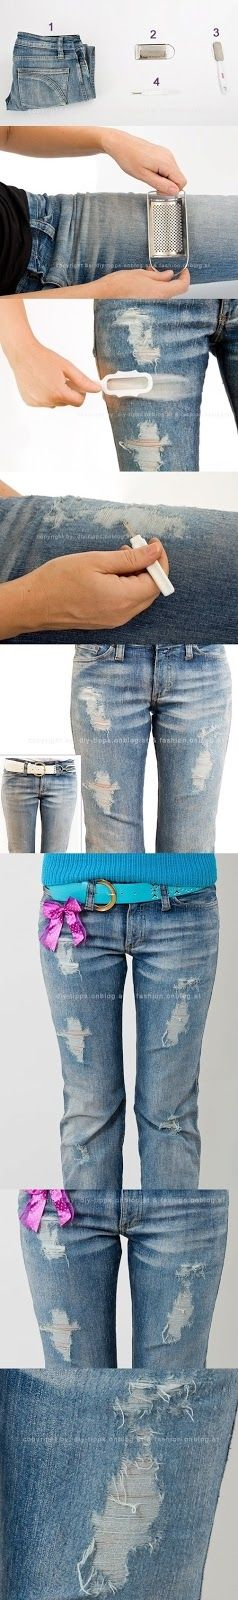 "DIY Torn Jeans - now I can buy the cheap jeans at the thrift shop & make them look like the more expensive ""distressed"" styles!"